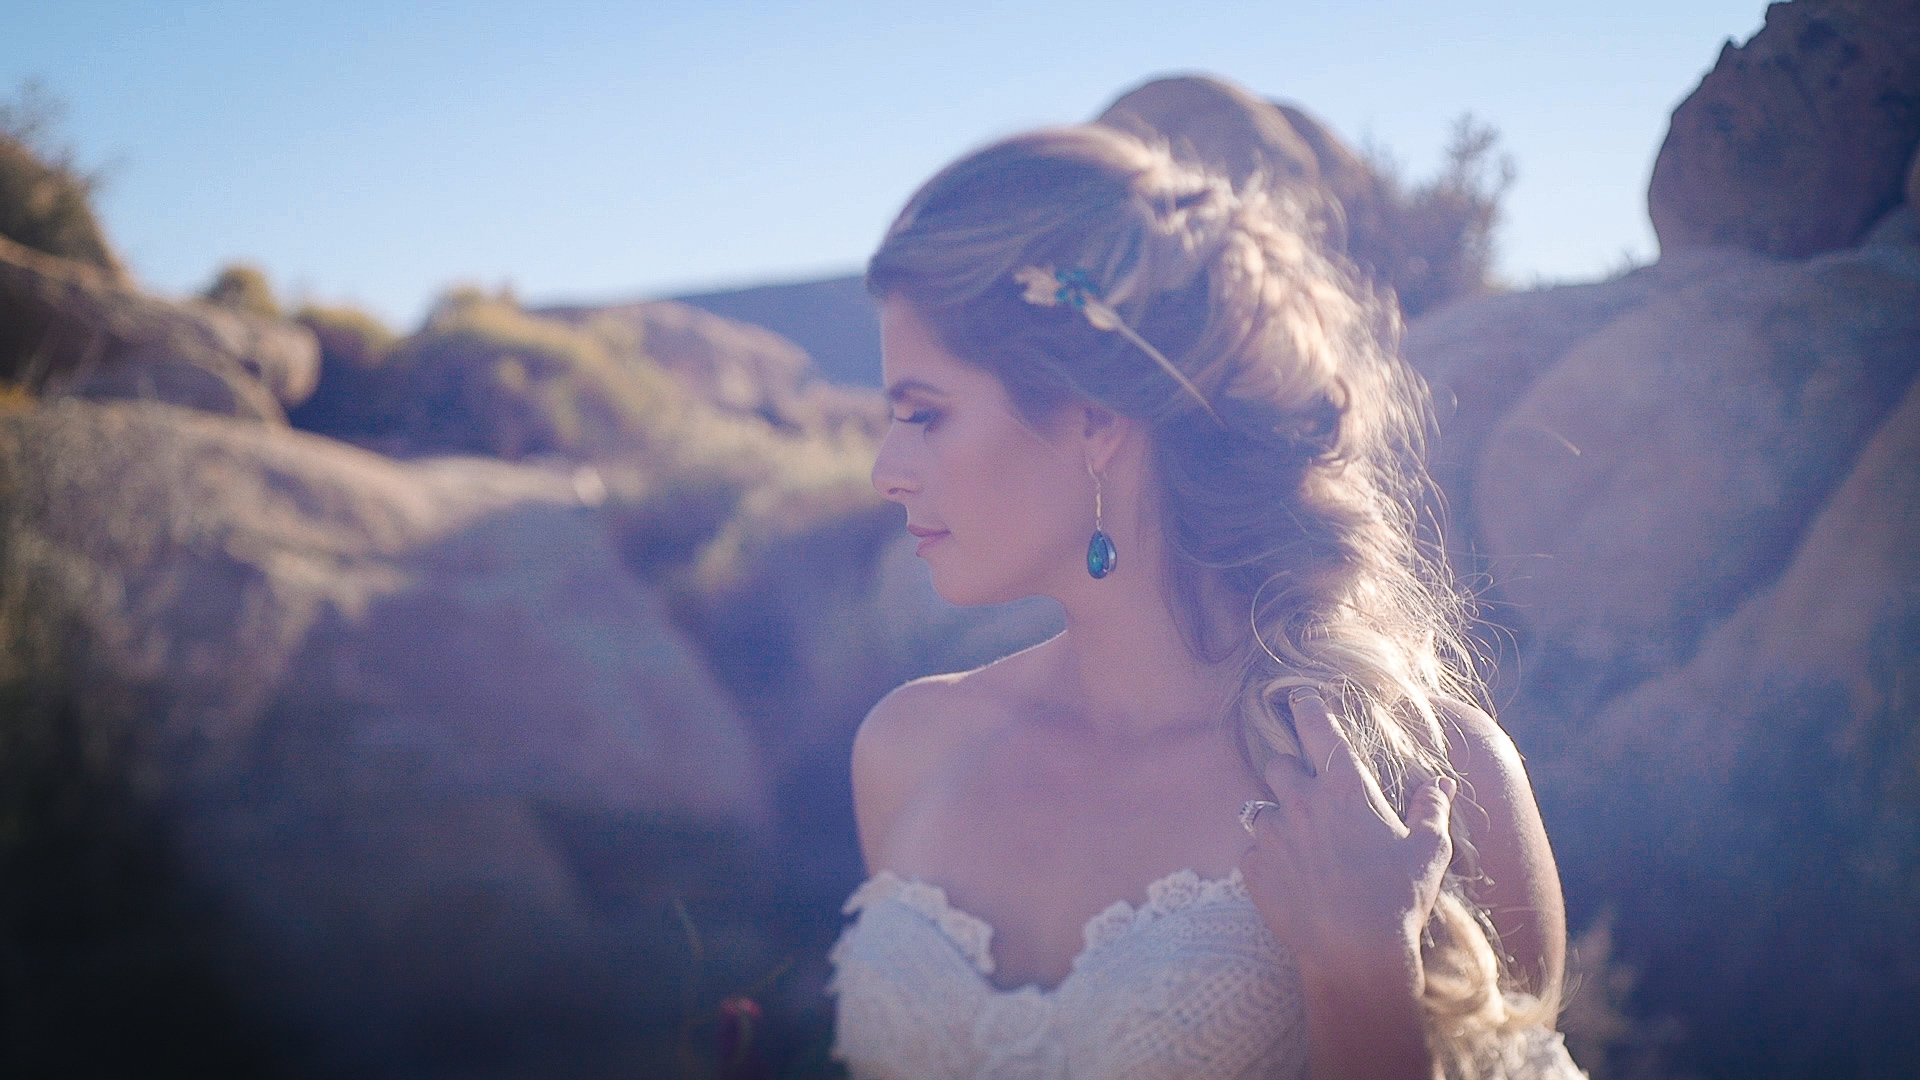 Bride at the Ruin Venue in Joshua Tree, Pioneertown.